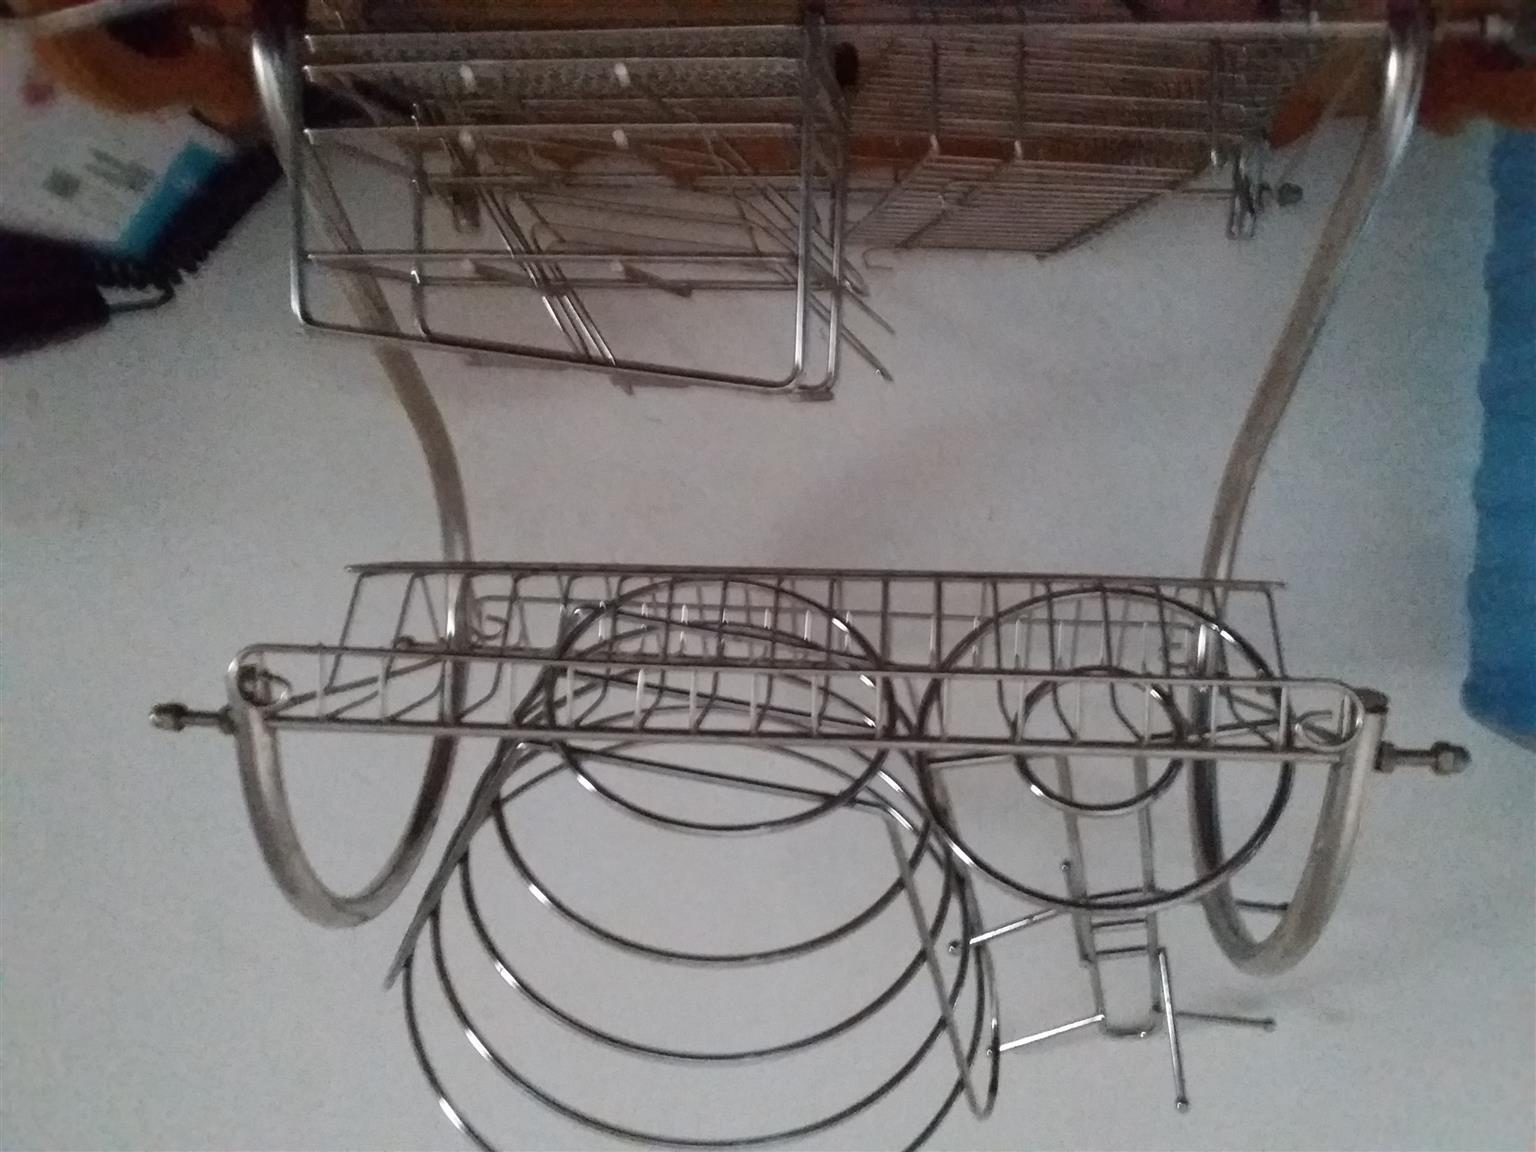 Various stainless steel apparatus for kitchen plus bath caddy